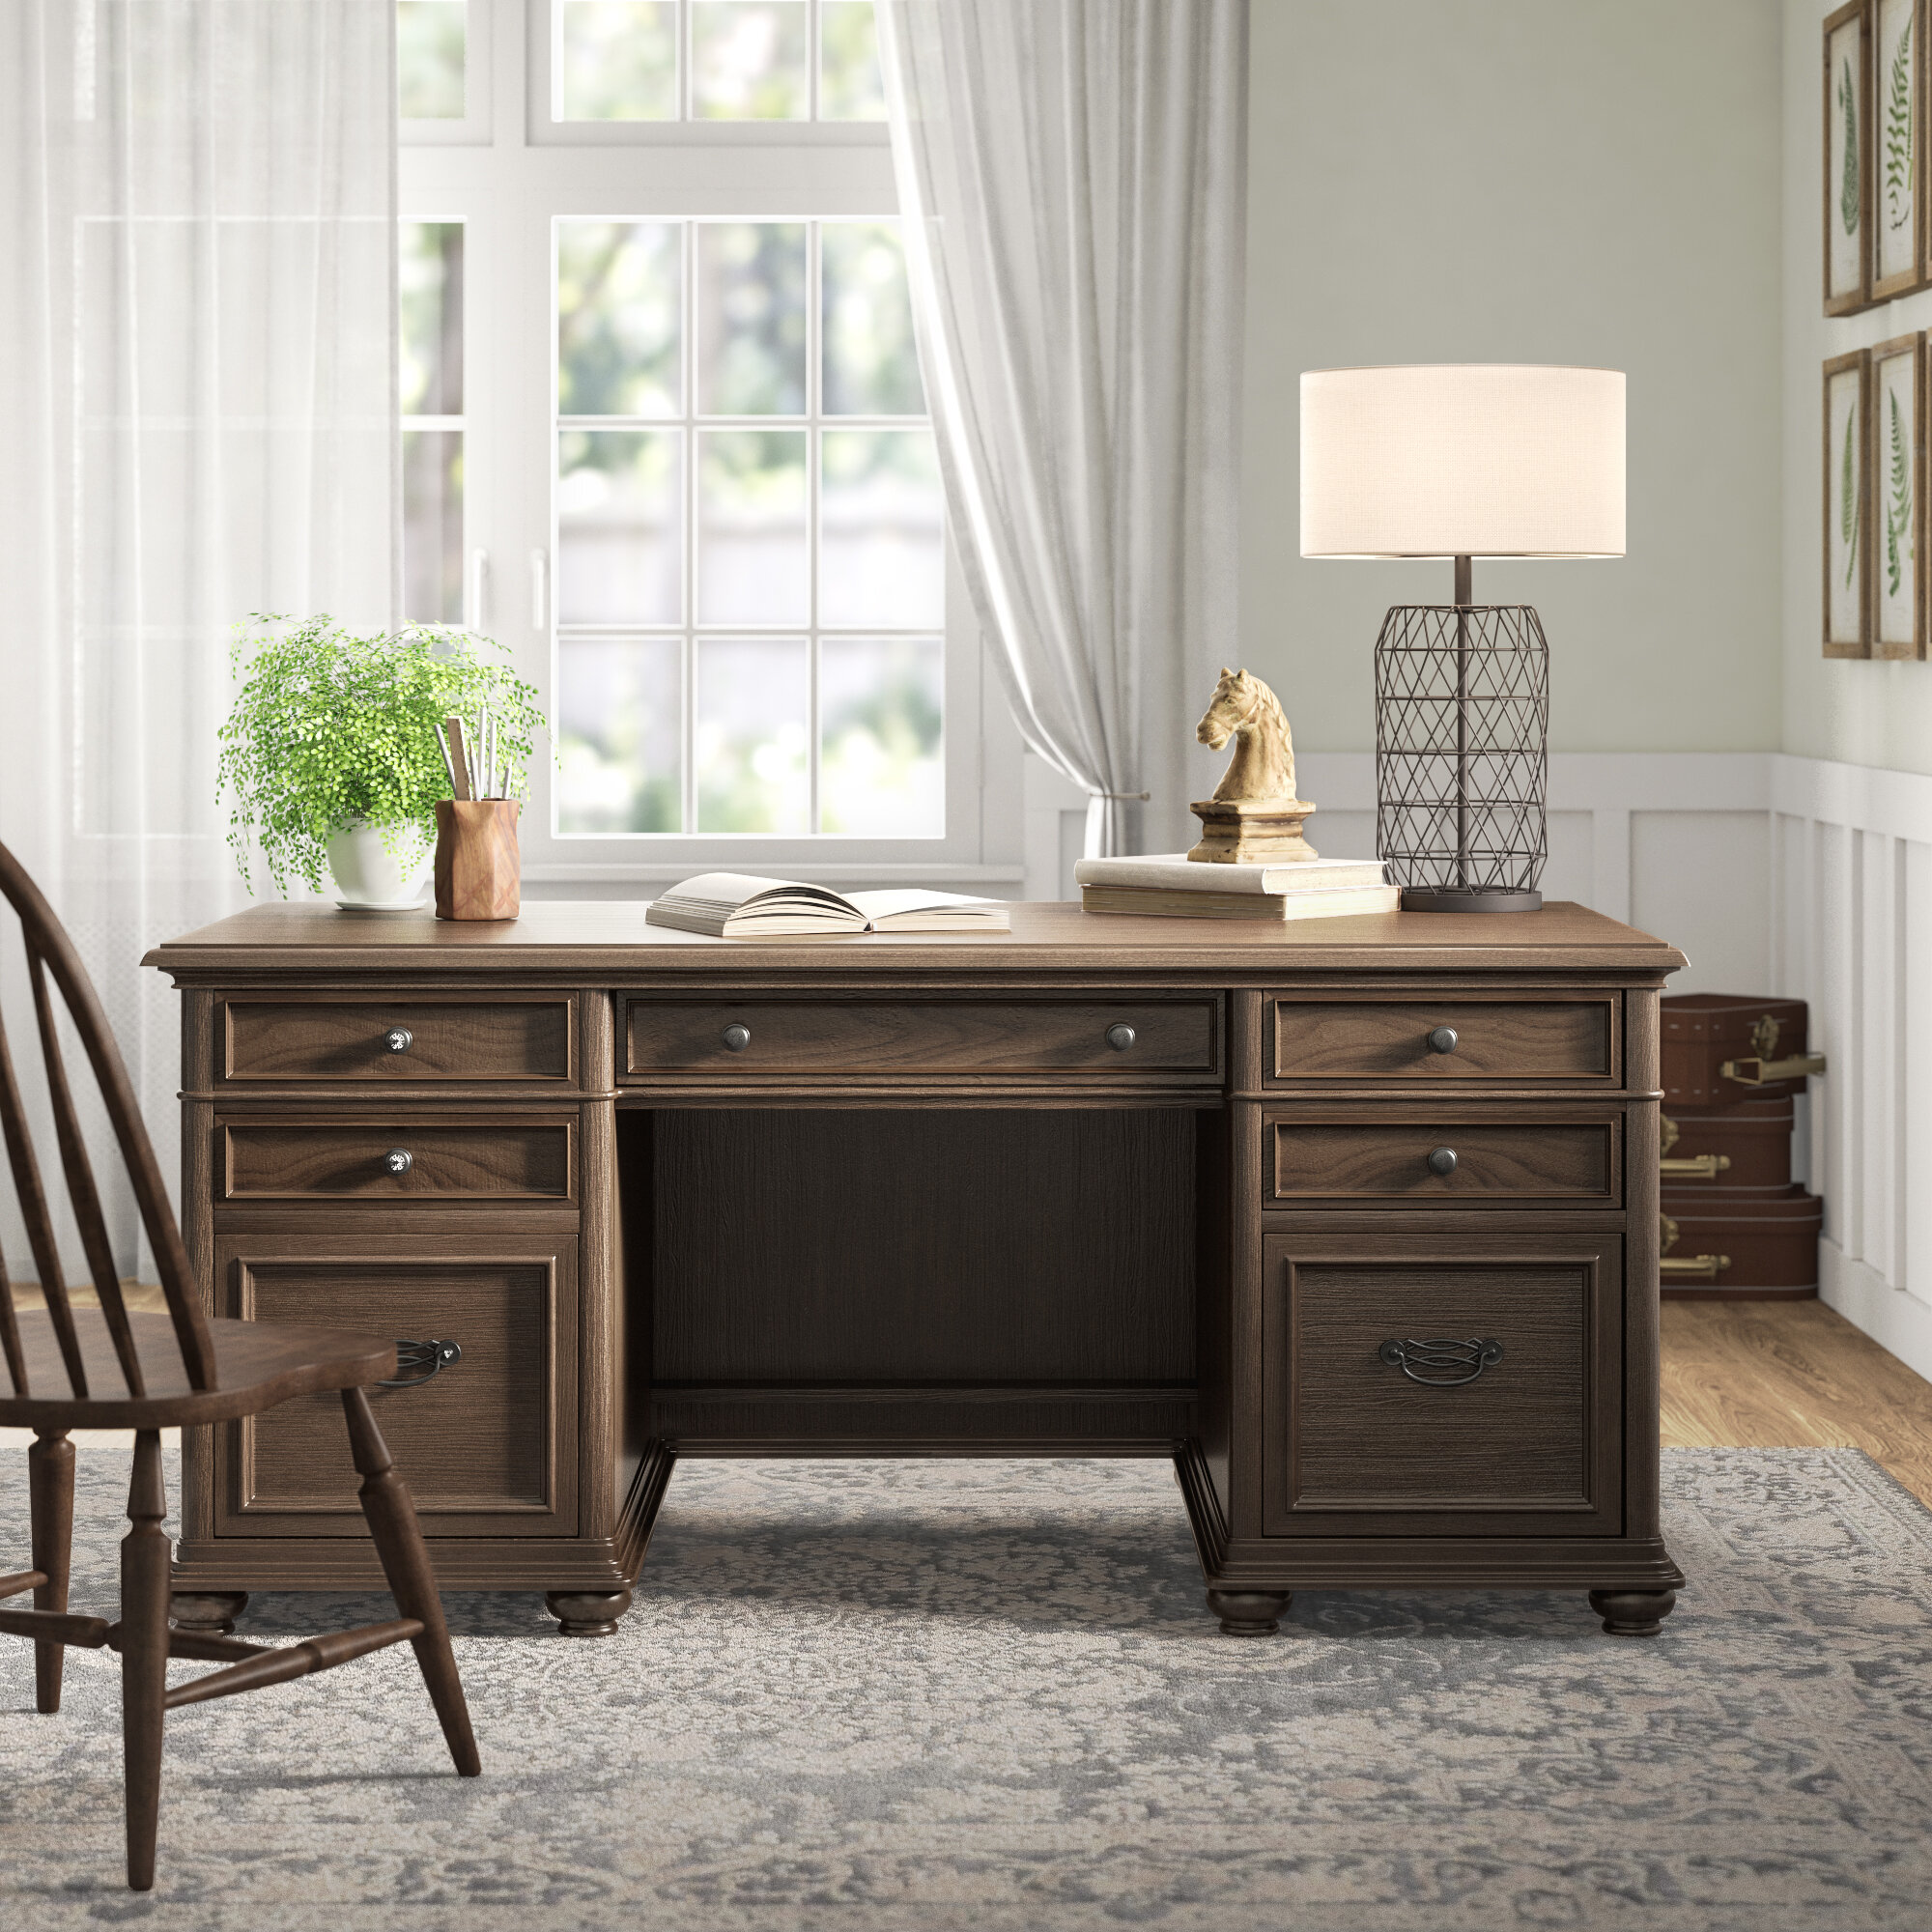 Admirable Canistota Bonita Westgrove Credenza Desk And Chair Set Short Links Chair Design For Home Short Linksinfo